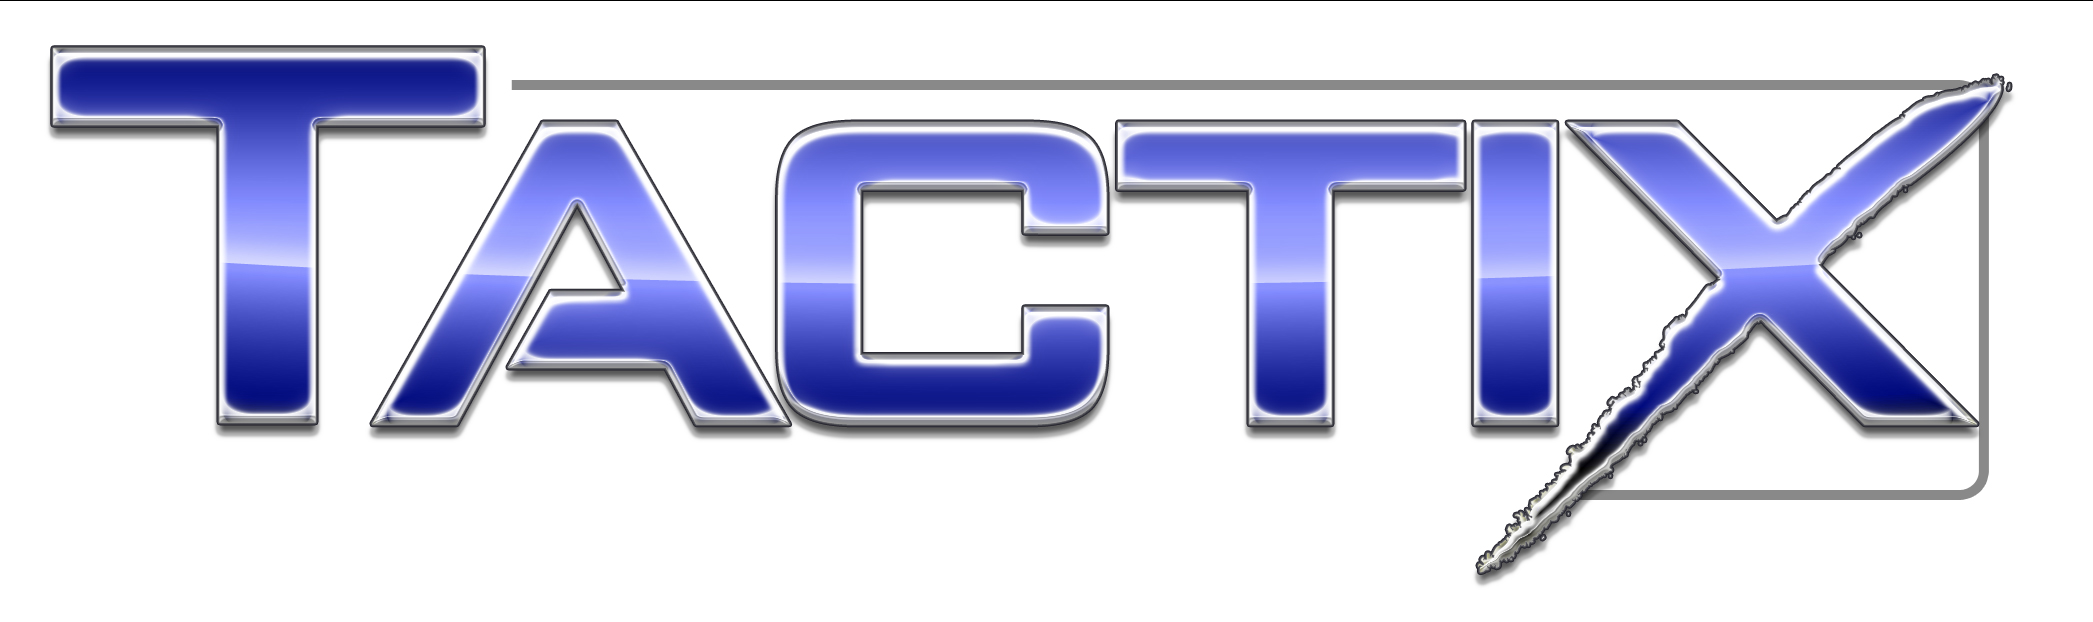 Tactix Fitness And Martial Arts Certification And Business Model Now